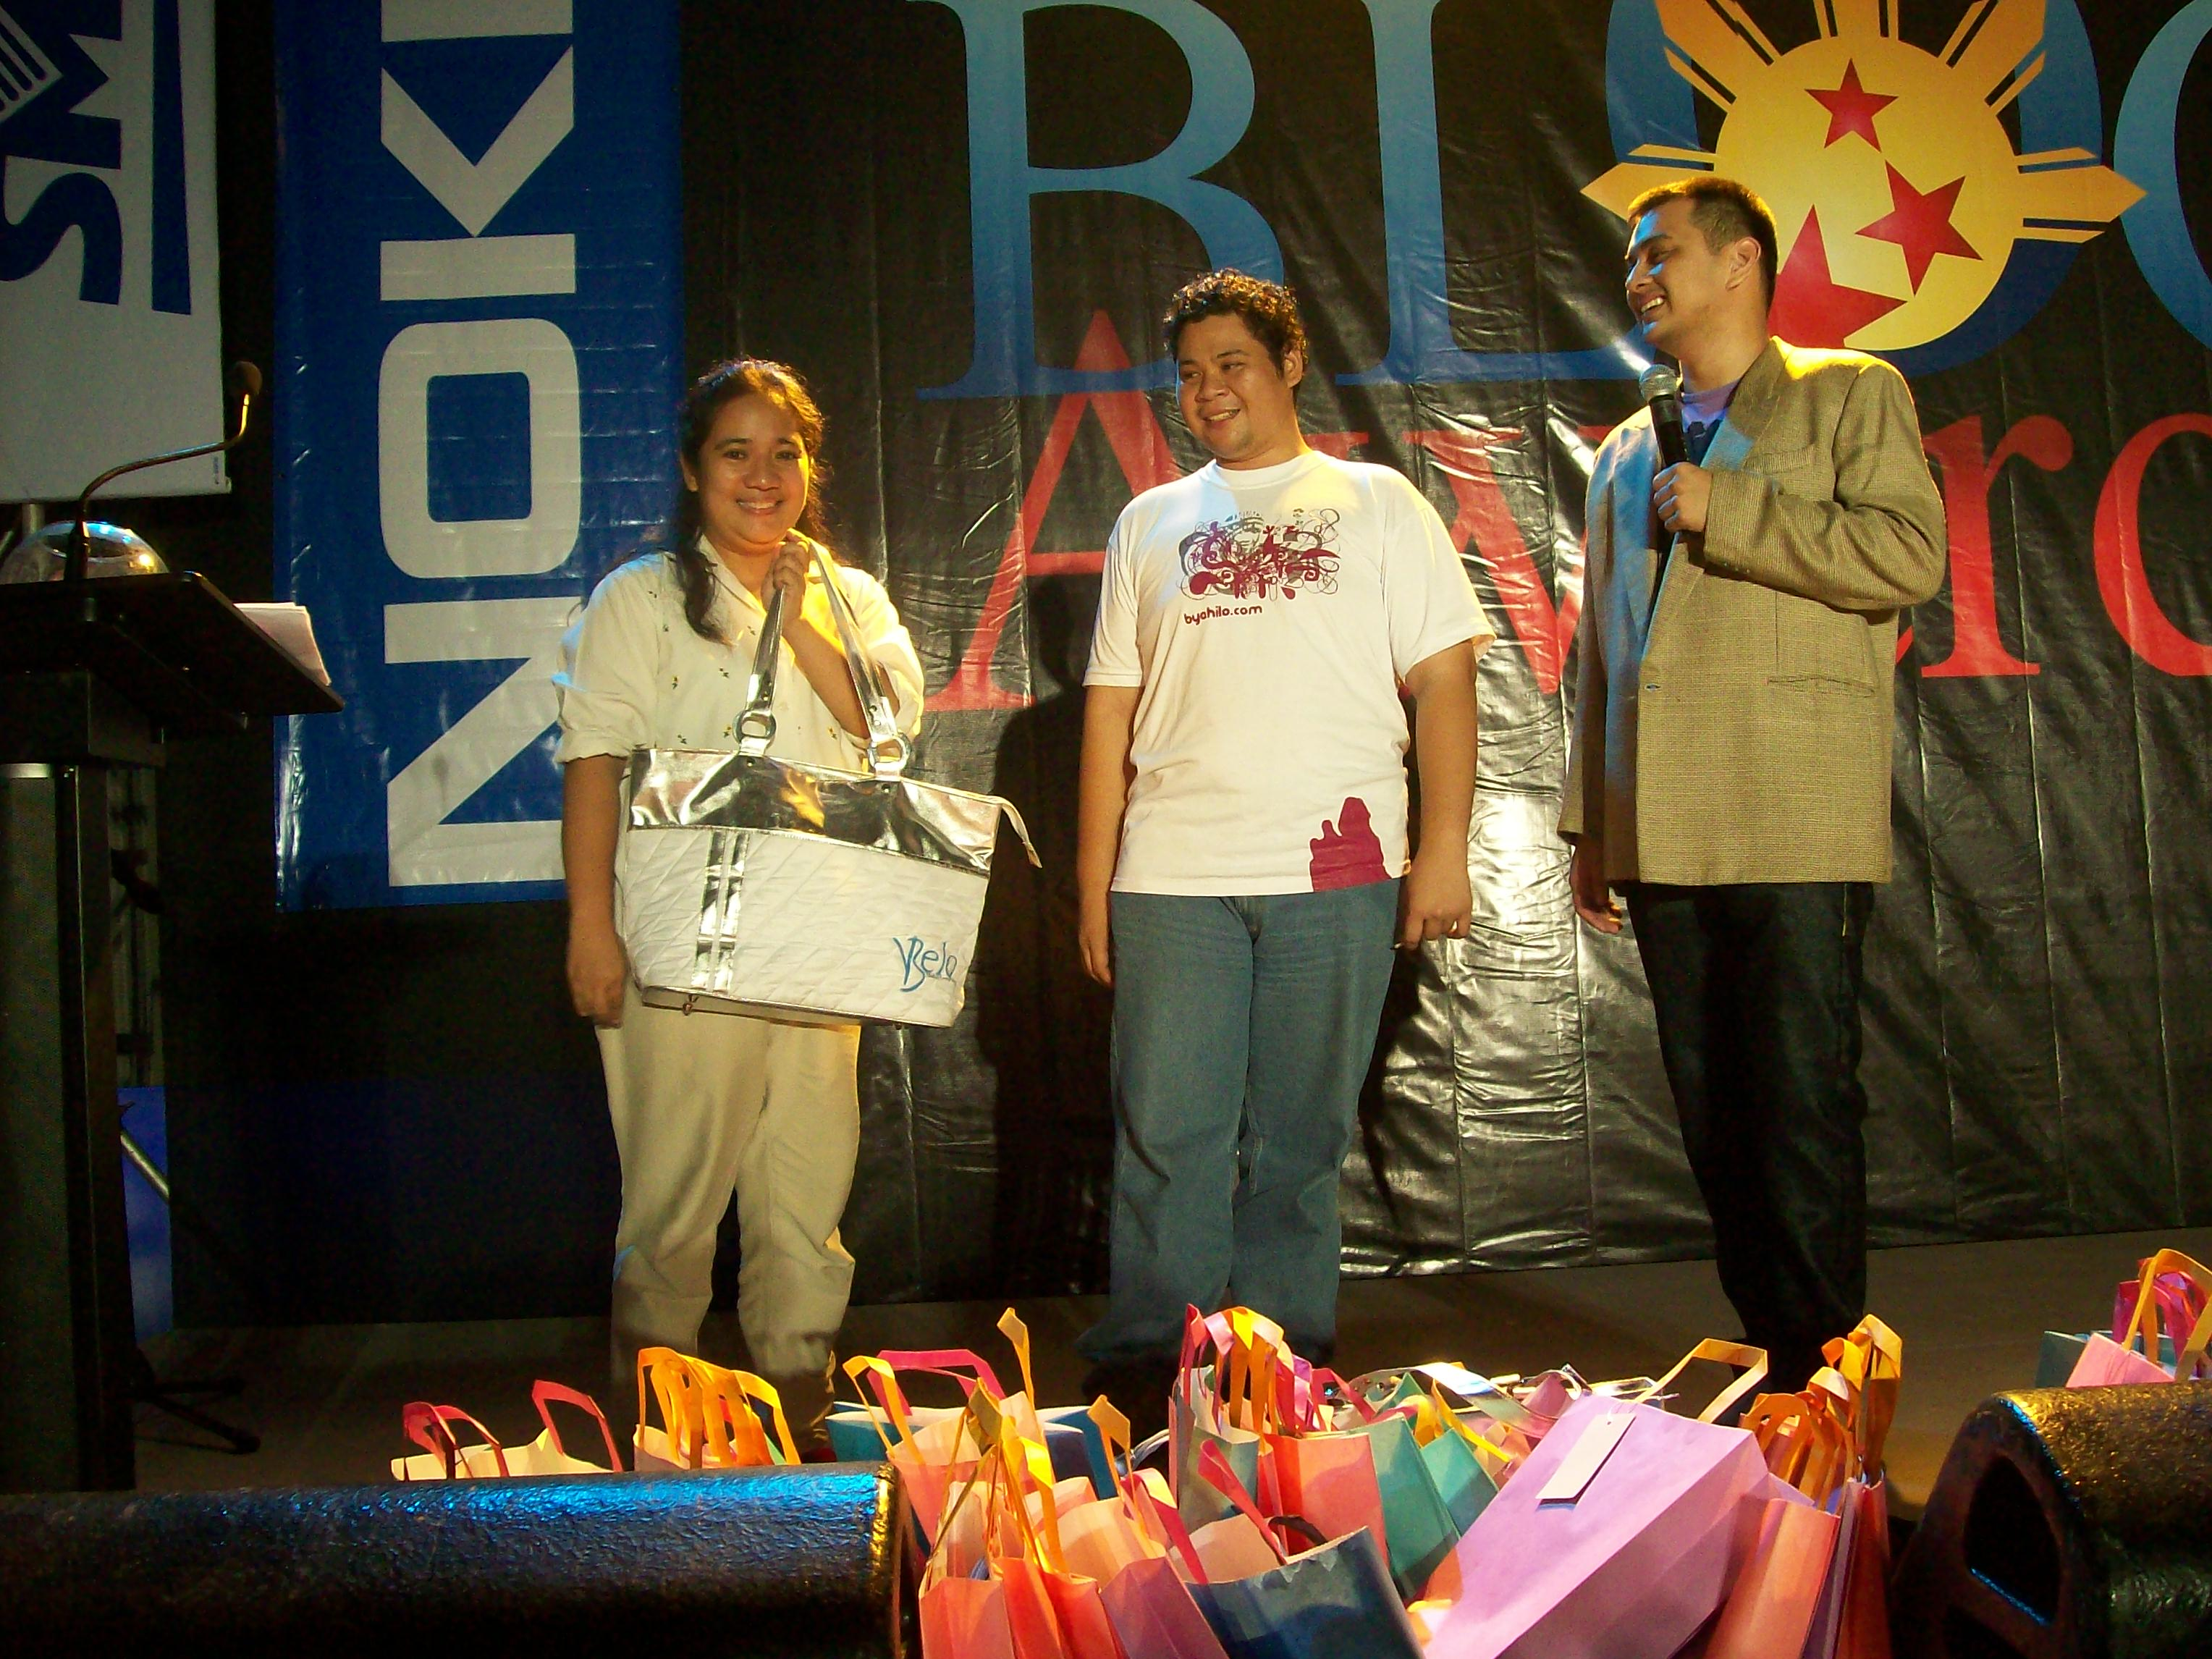 During the raffle, three lucky bloggers won a Belo Bag containing a